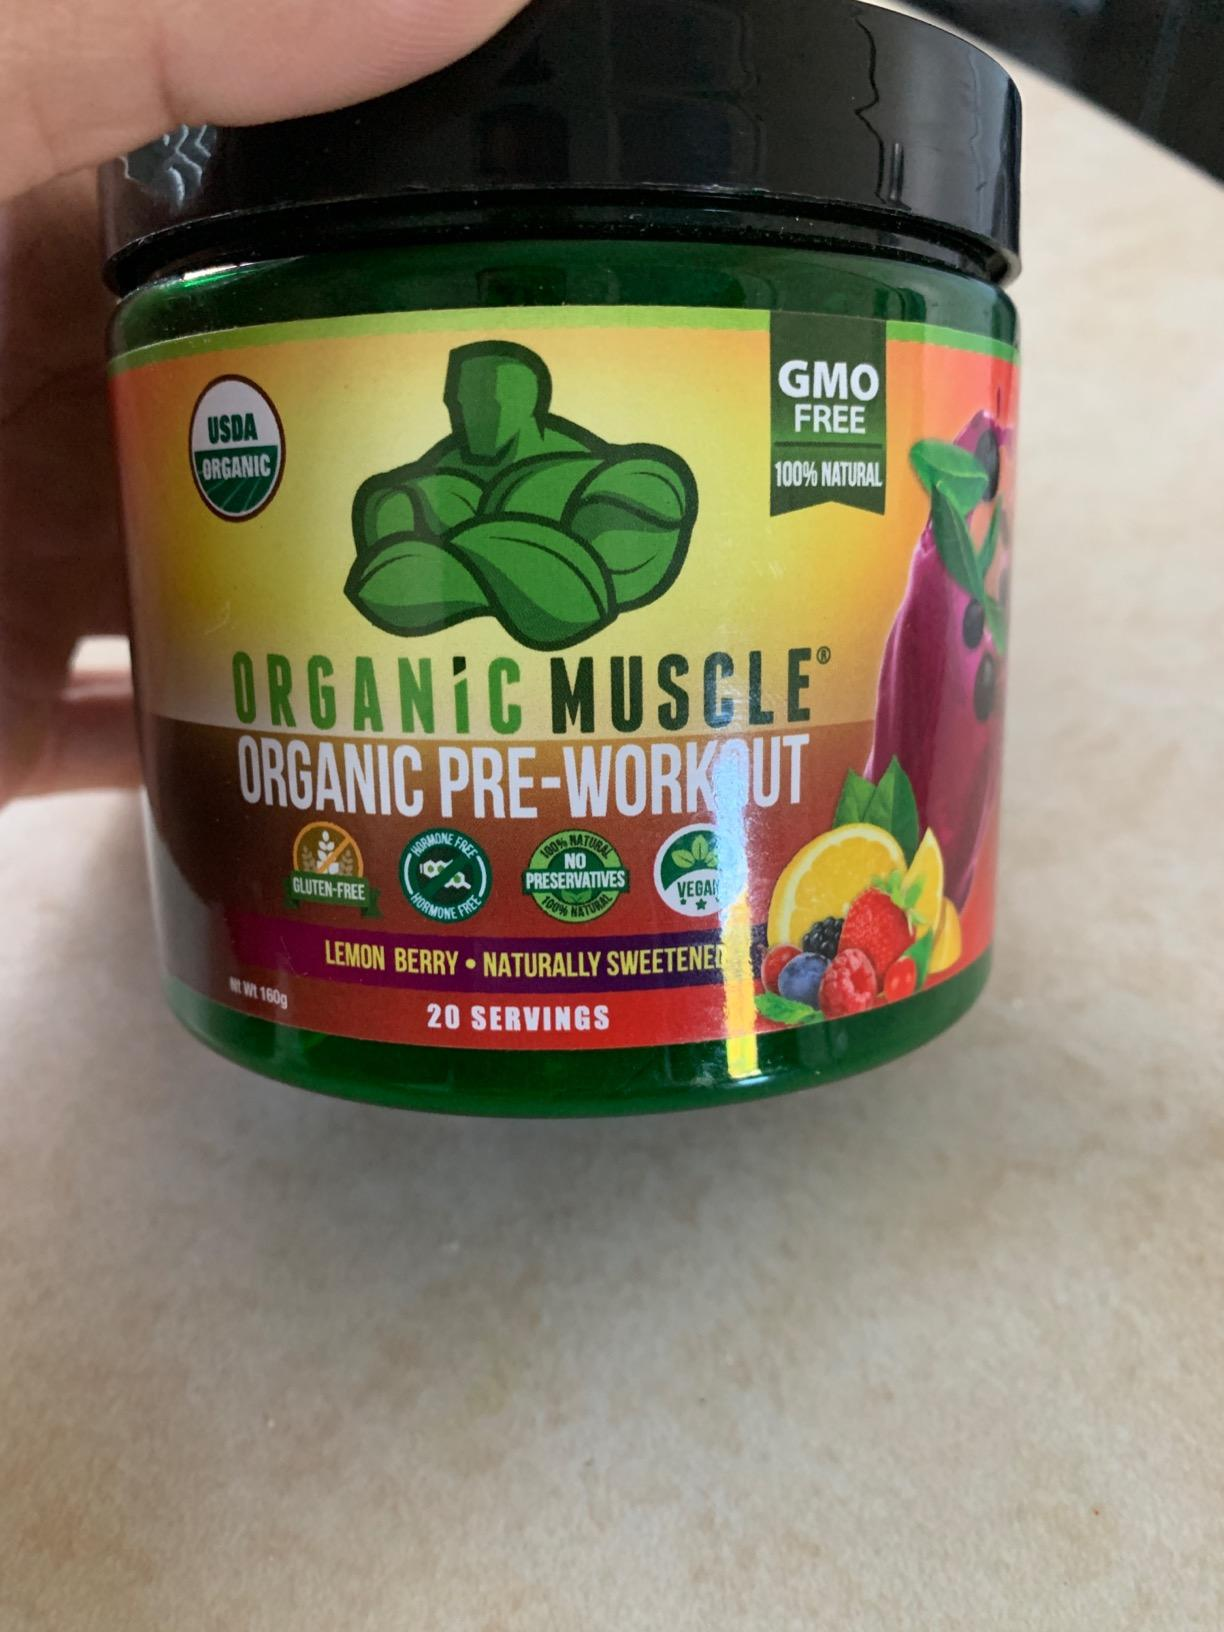 USDA Certified Organic Pre-Workout - Lemon Berry Flavor